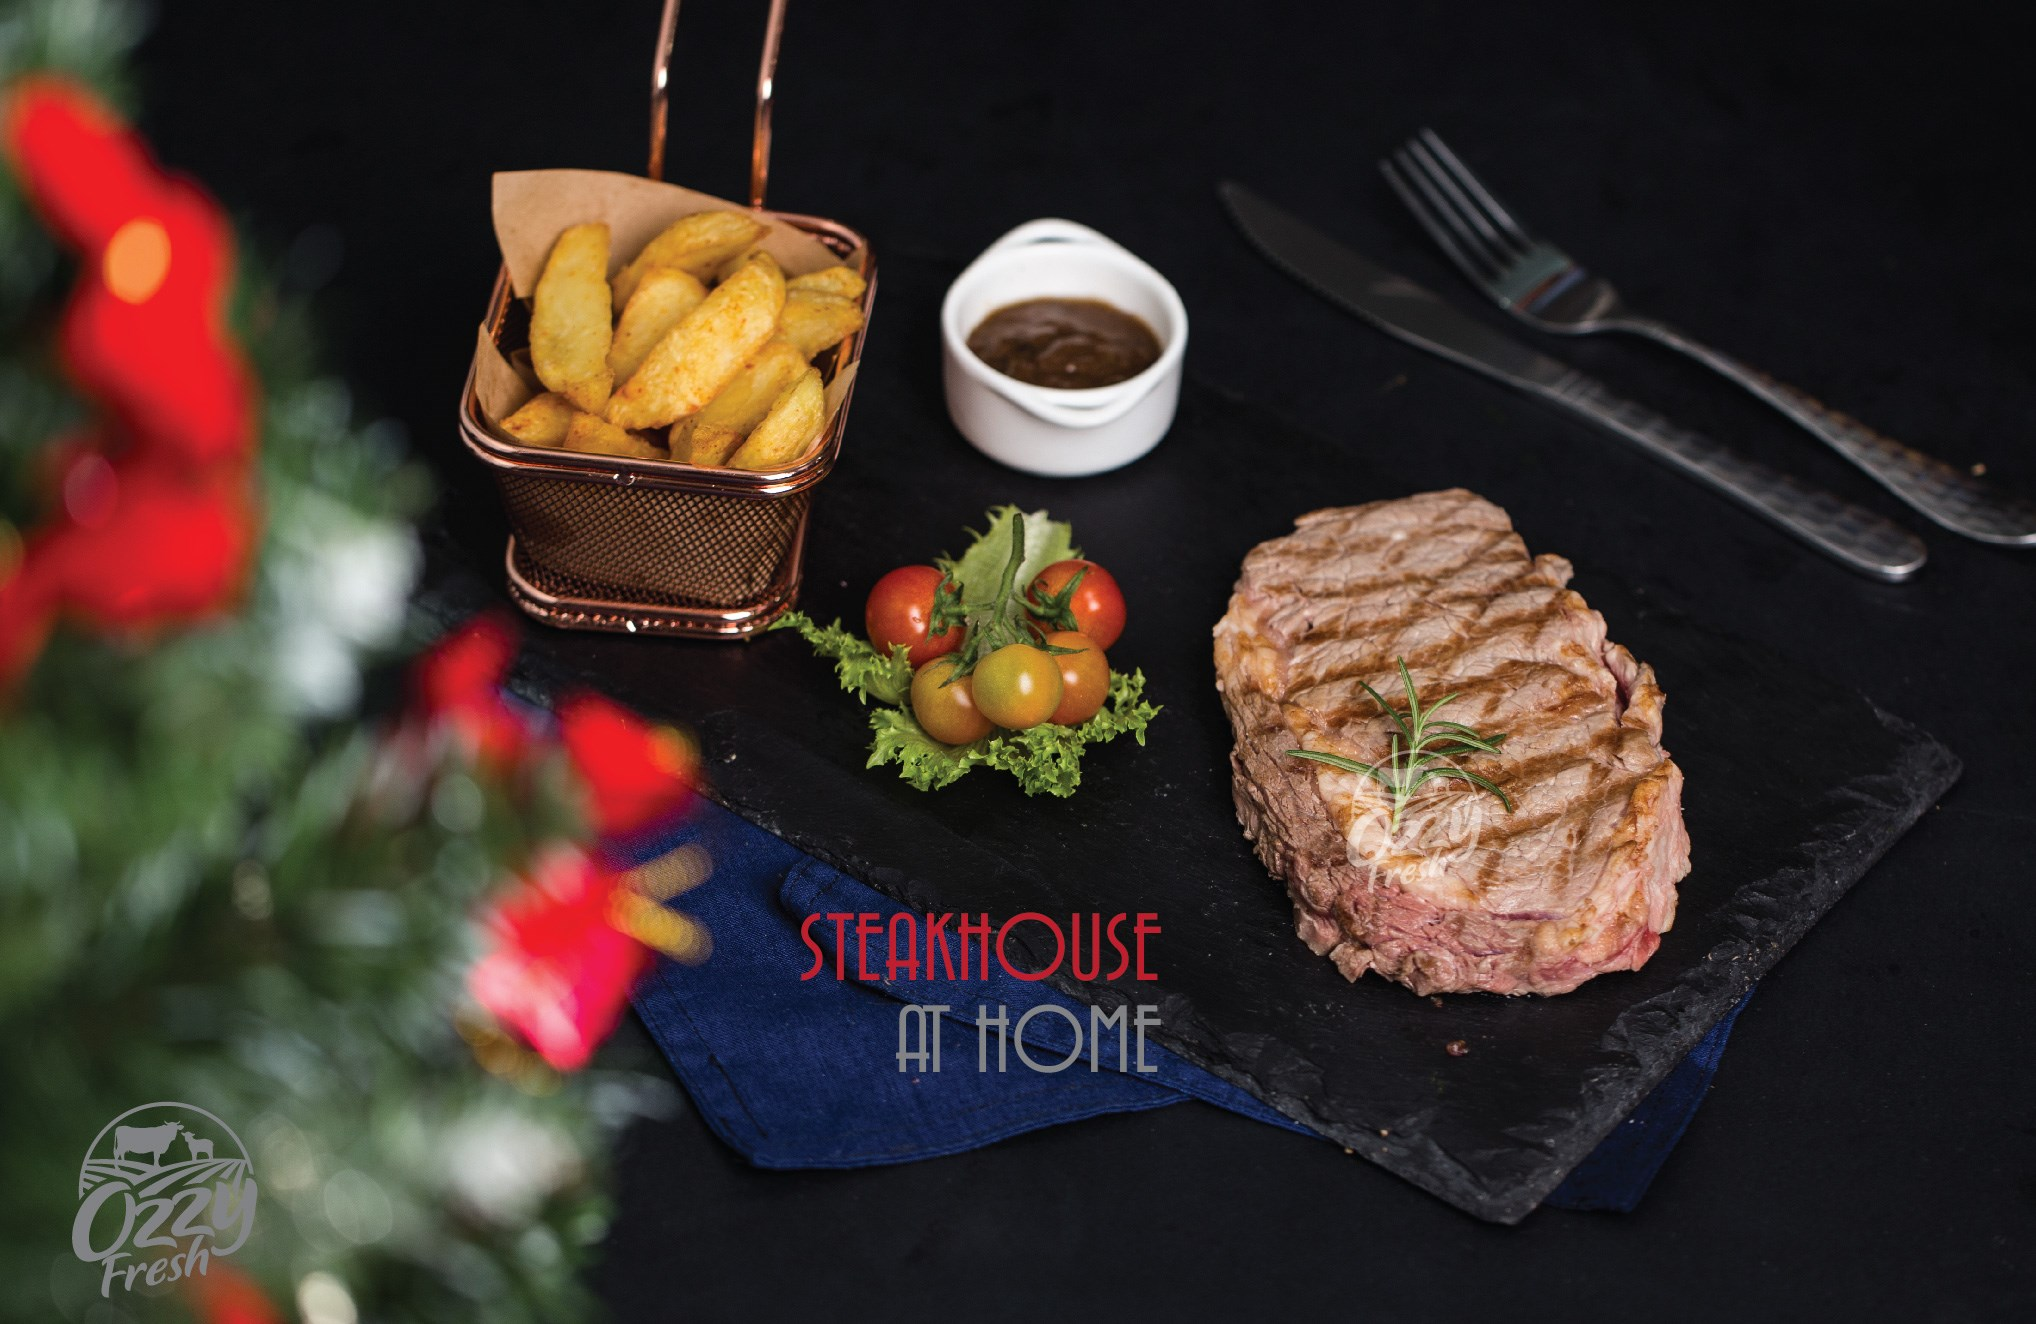 X'MAS STEAK BOX IS COMING TO OZZY FRESH